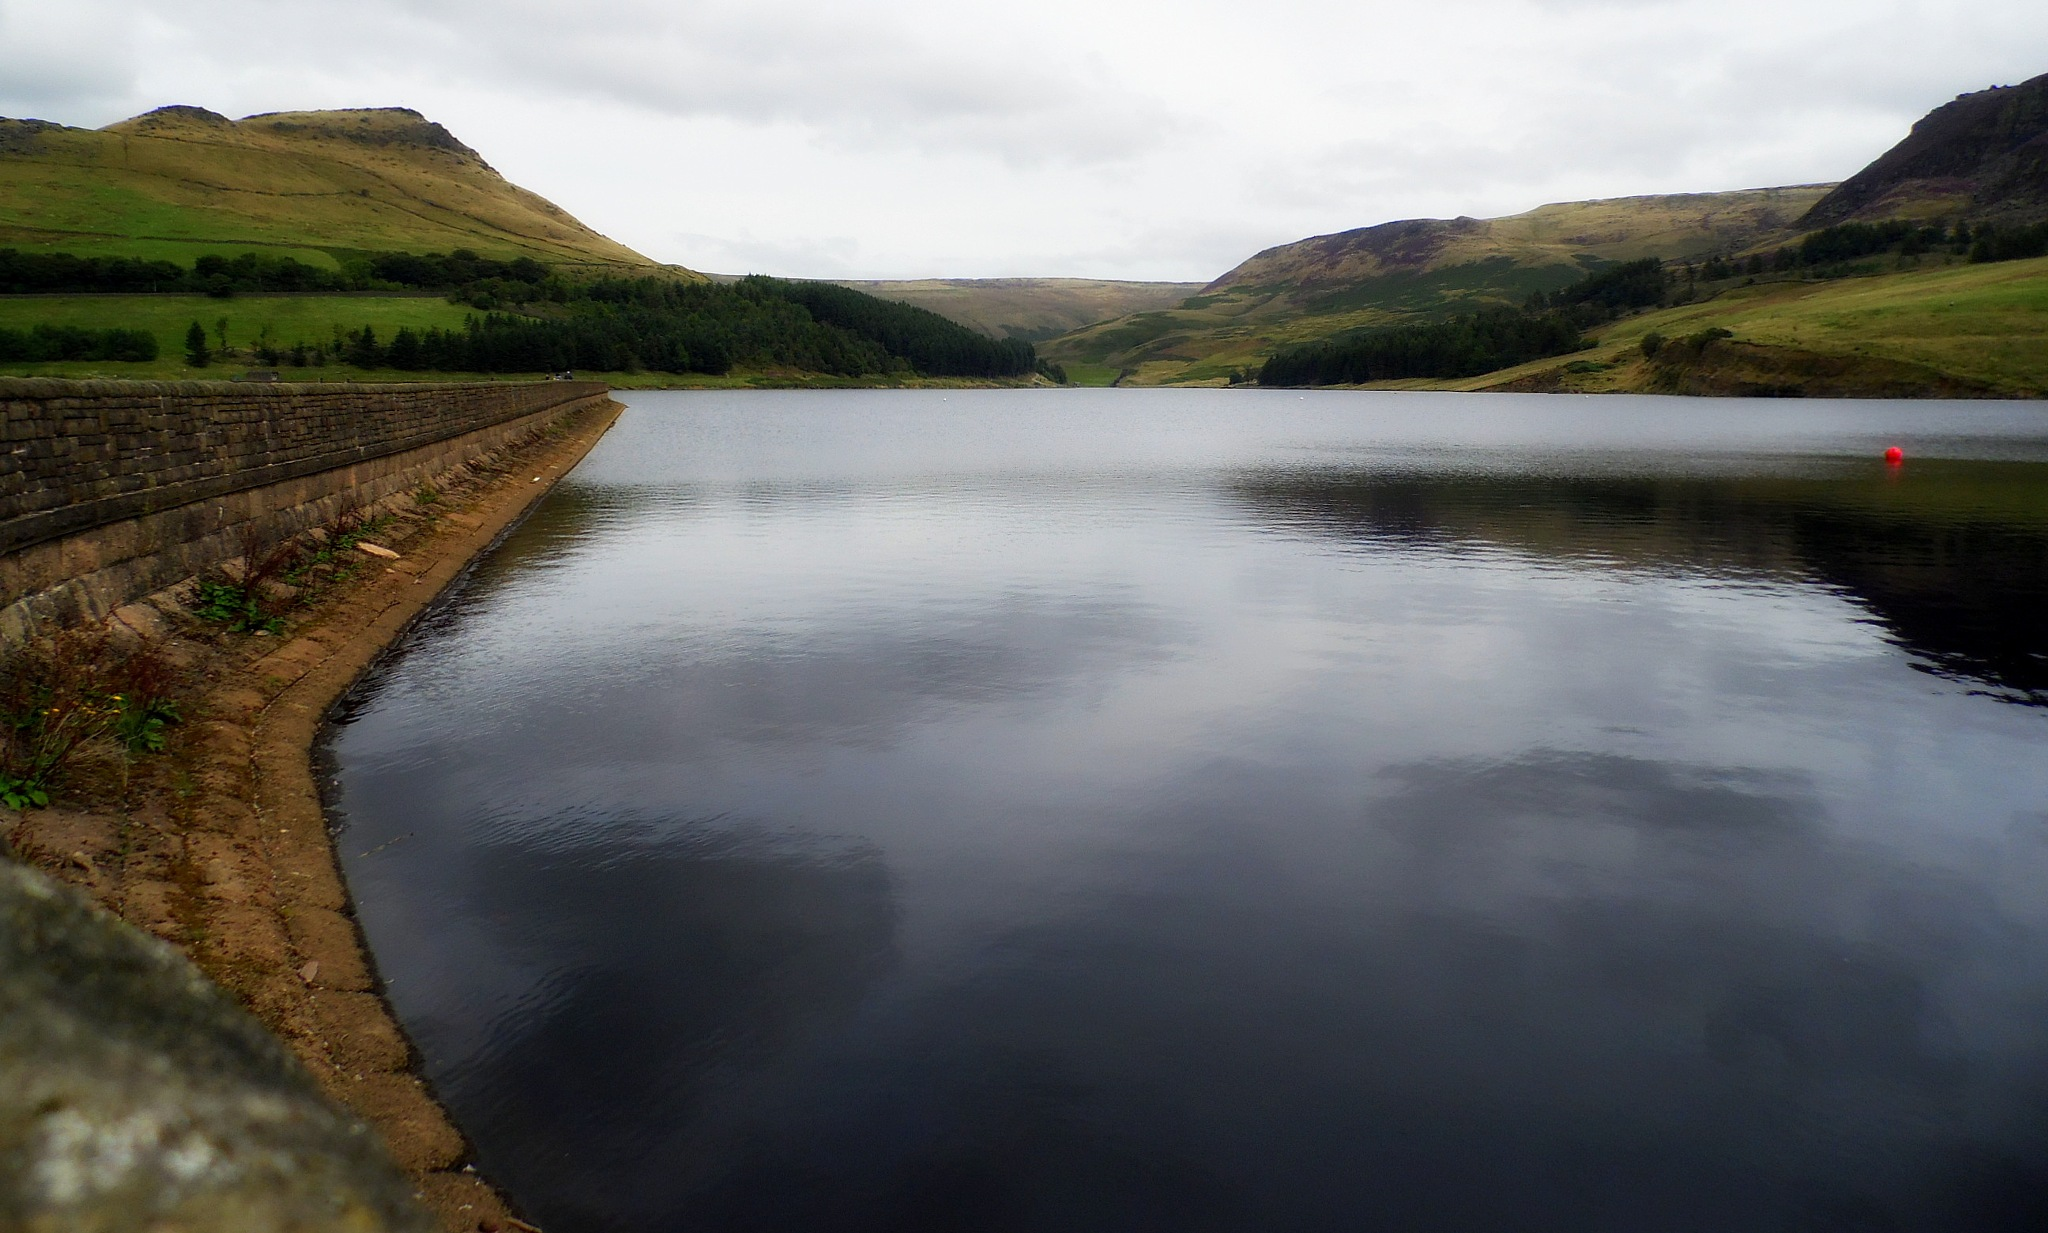 Dovestones by shelley22